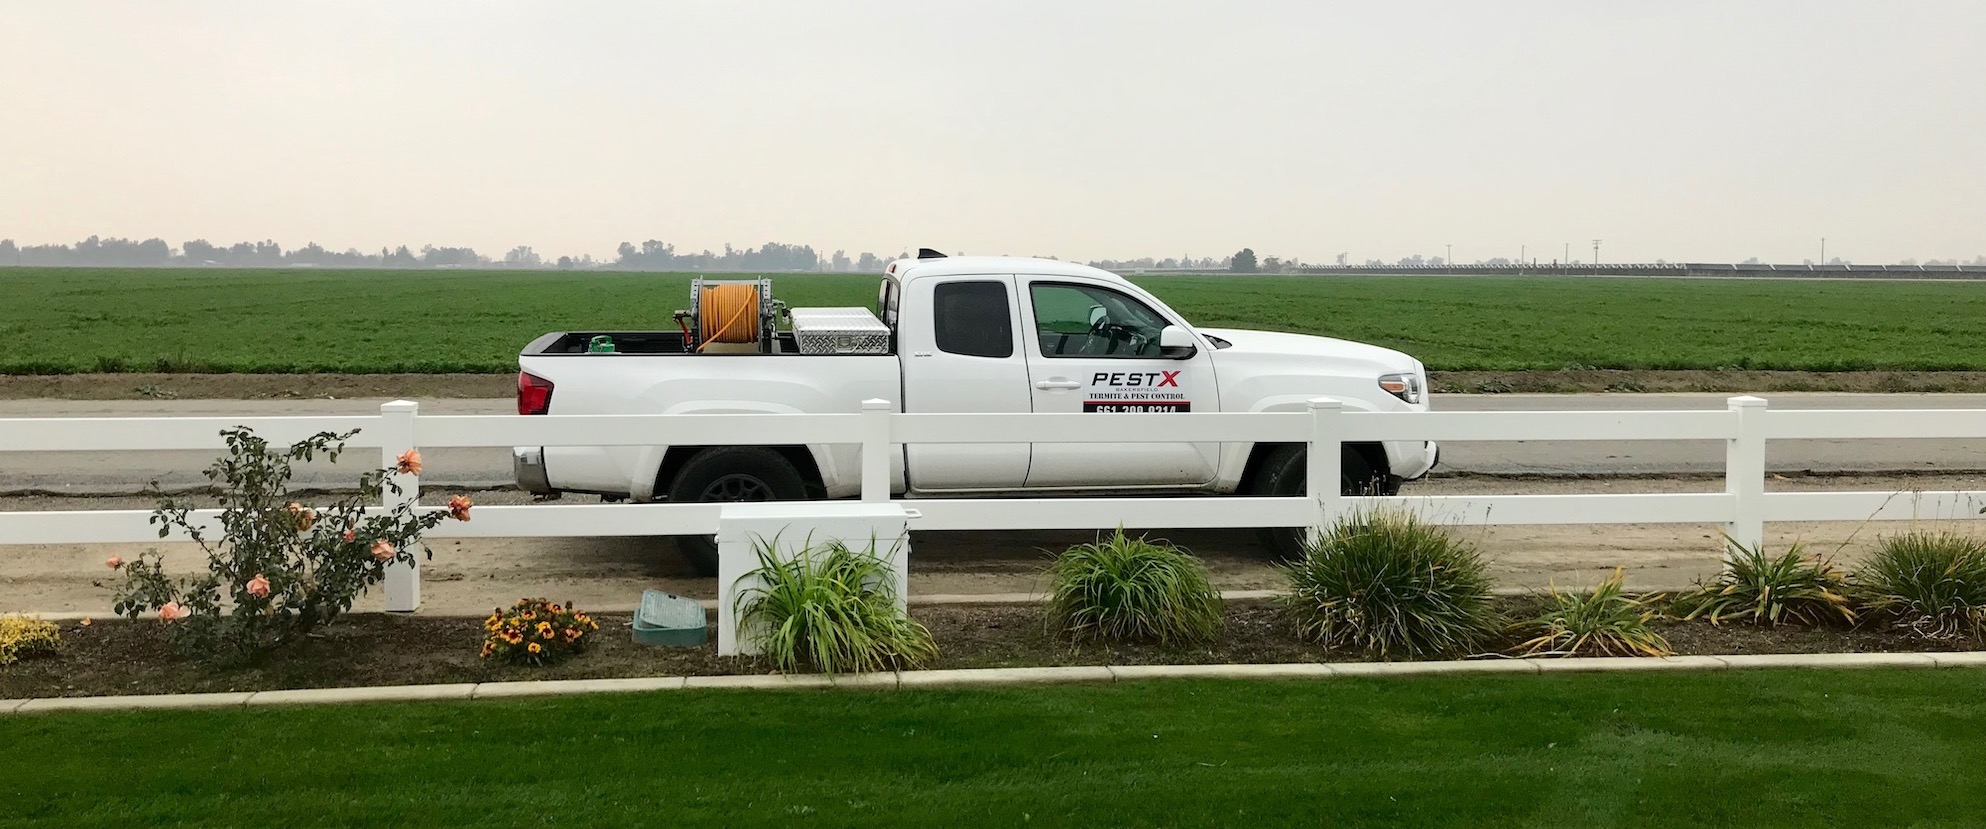 pest control in Bakersfield, Bakersfield pest control